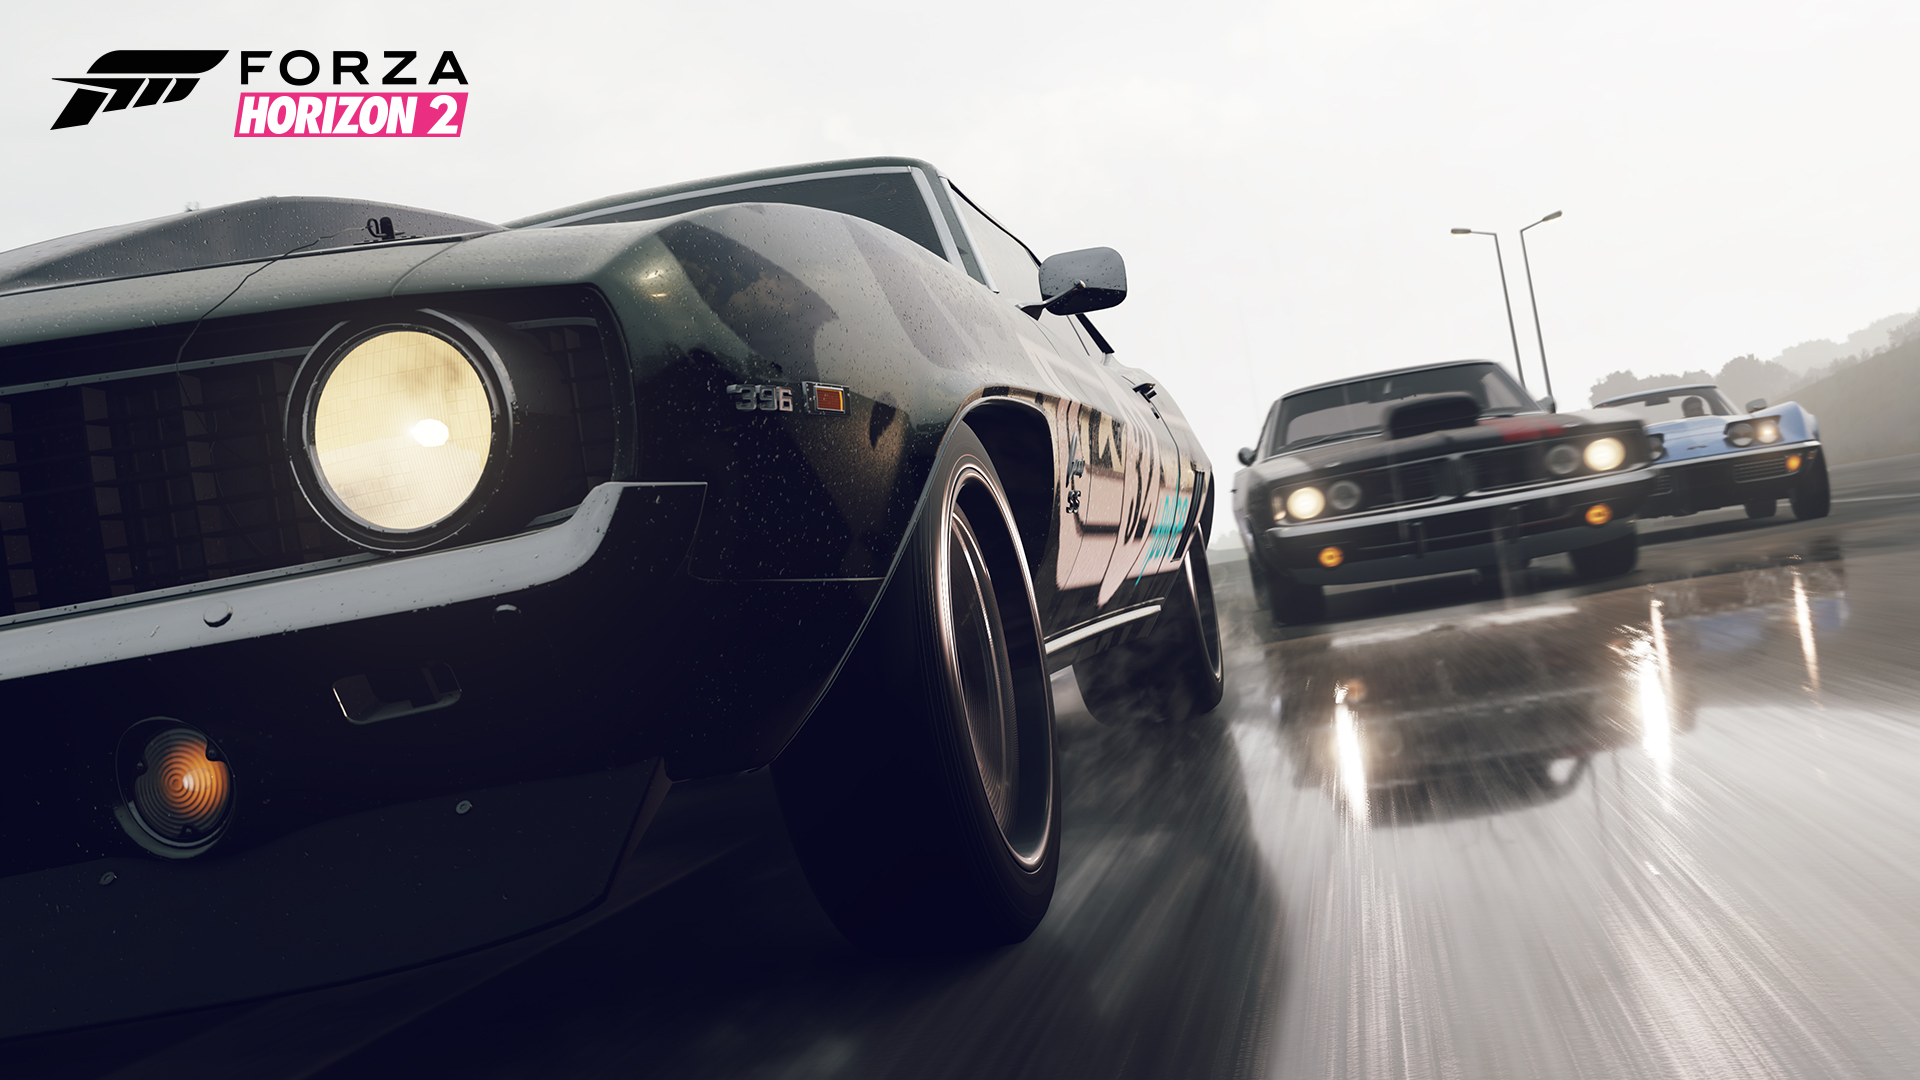 Forza Horizon 2 Xbox One Review: One of the All-Time Great